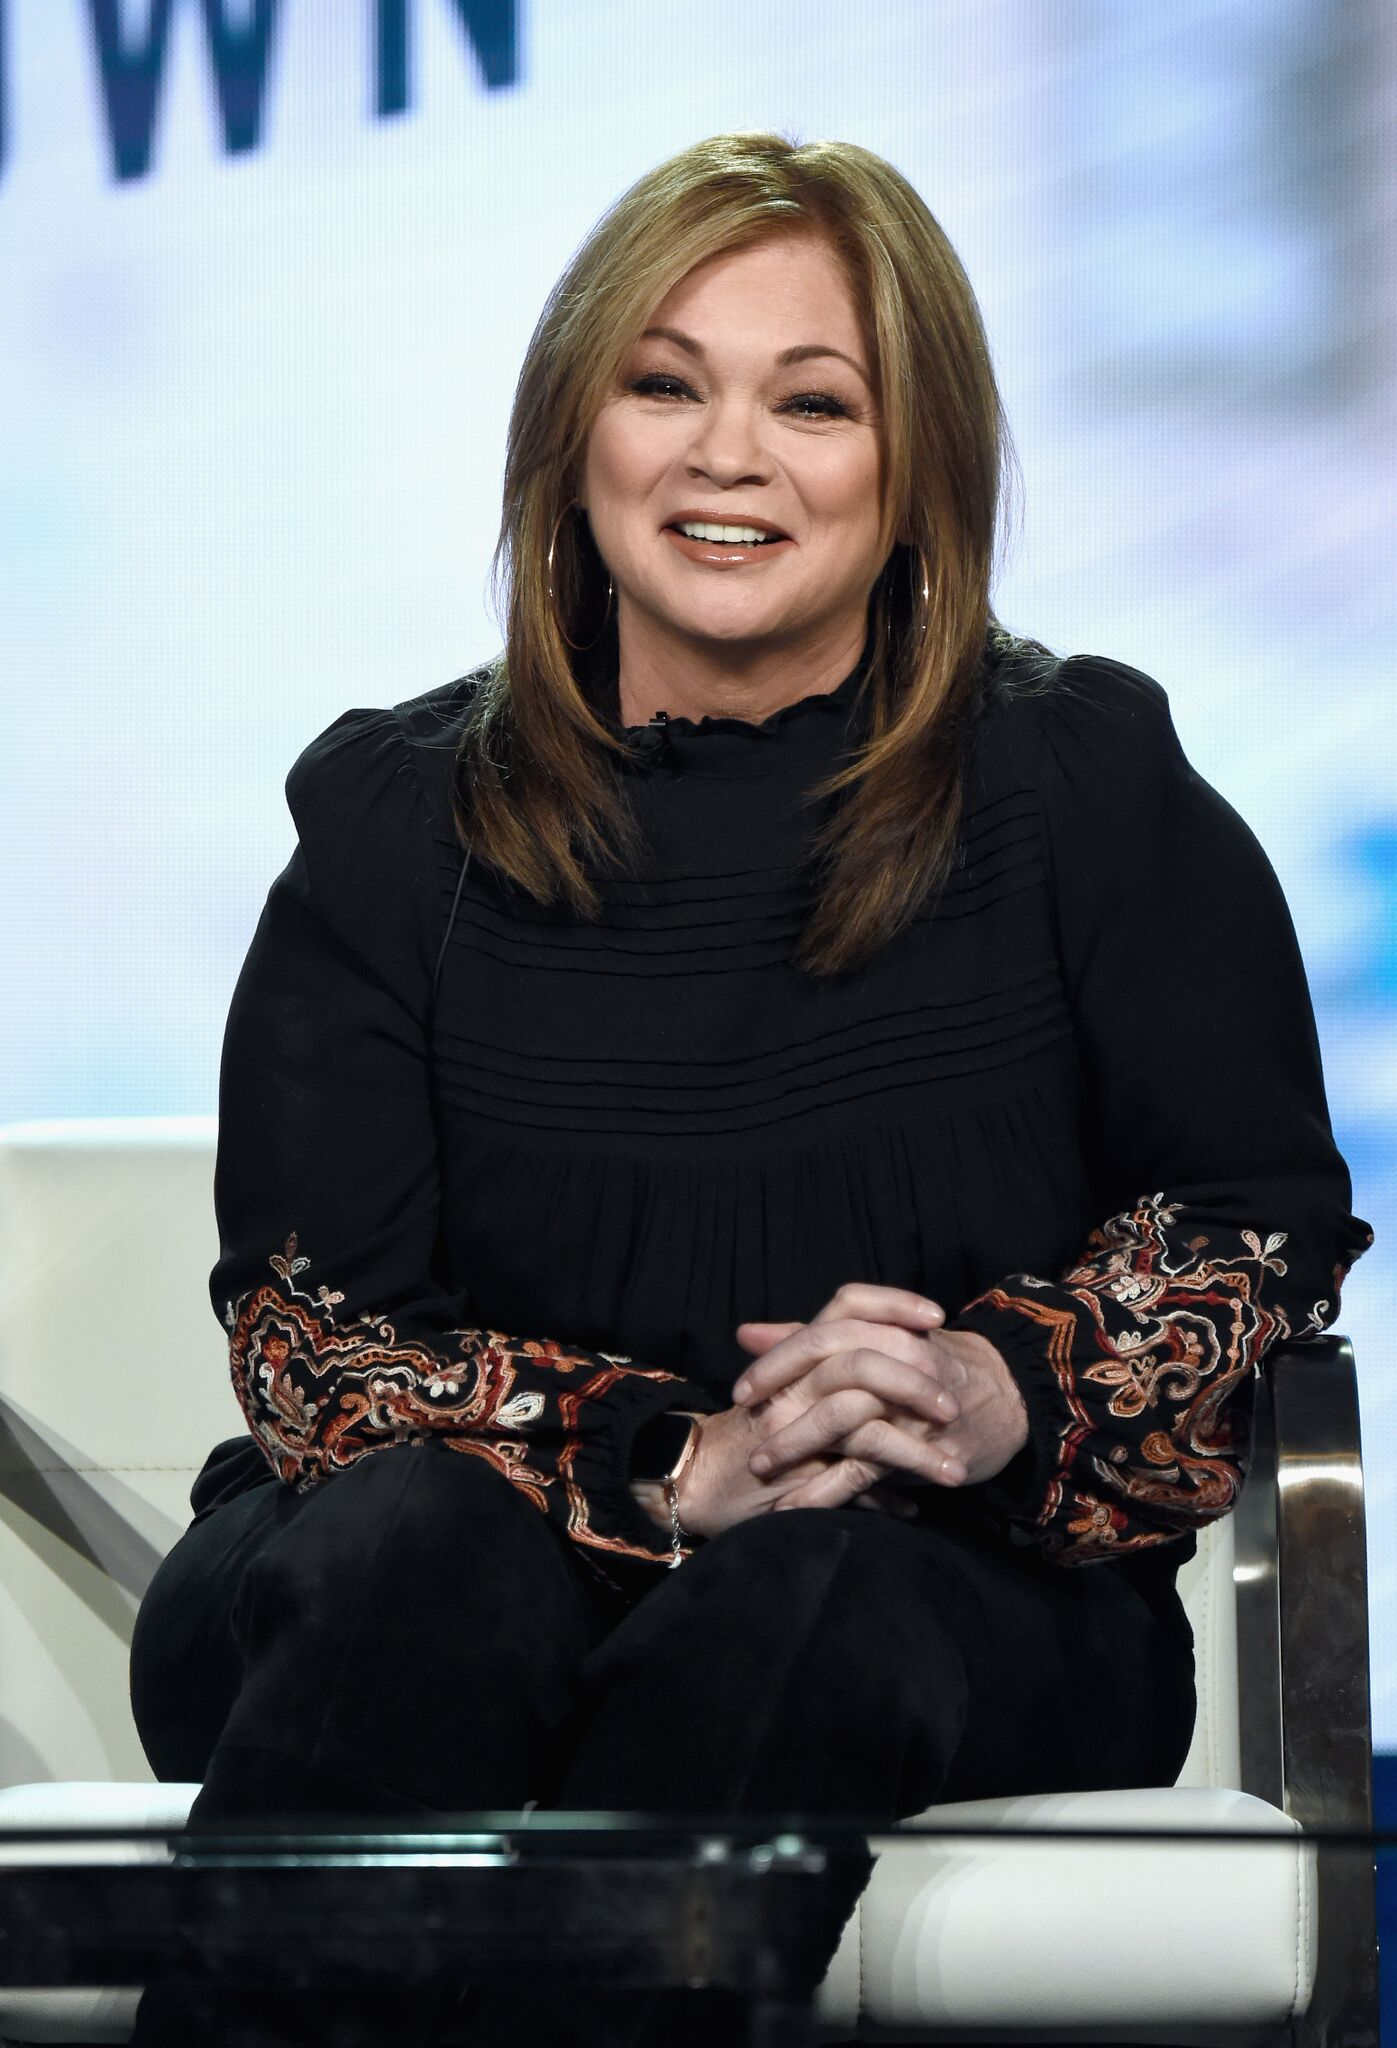 Valerie Bertinelli onstage during the Food Network portion of the Discovery Communications Winter 2019 TCA Tour | Photo: Getty Images